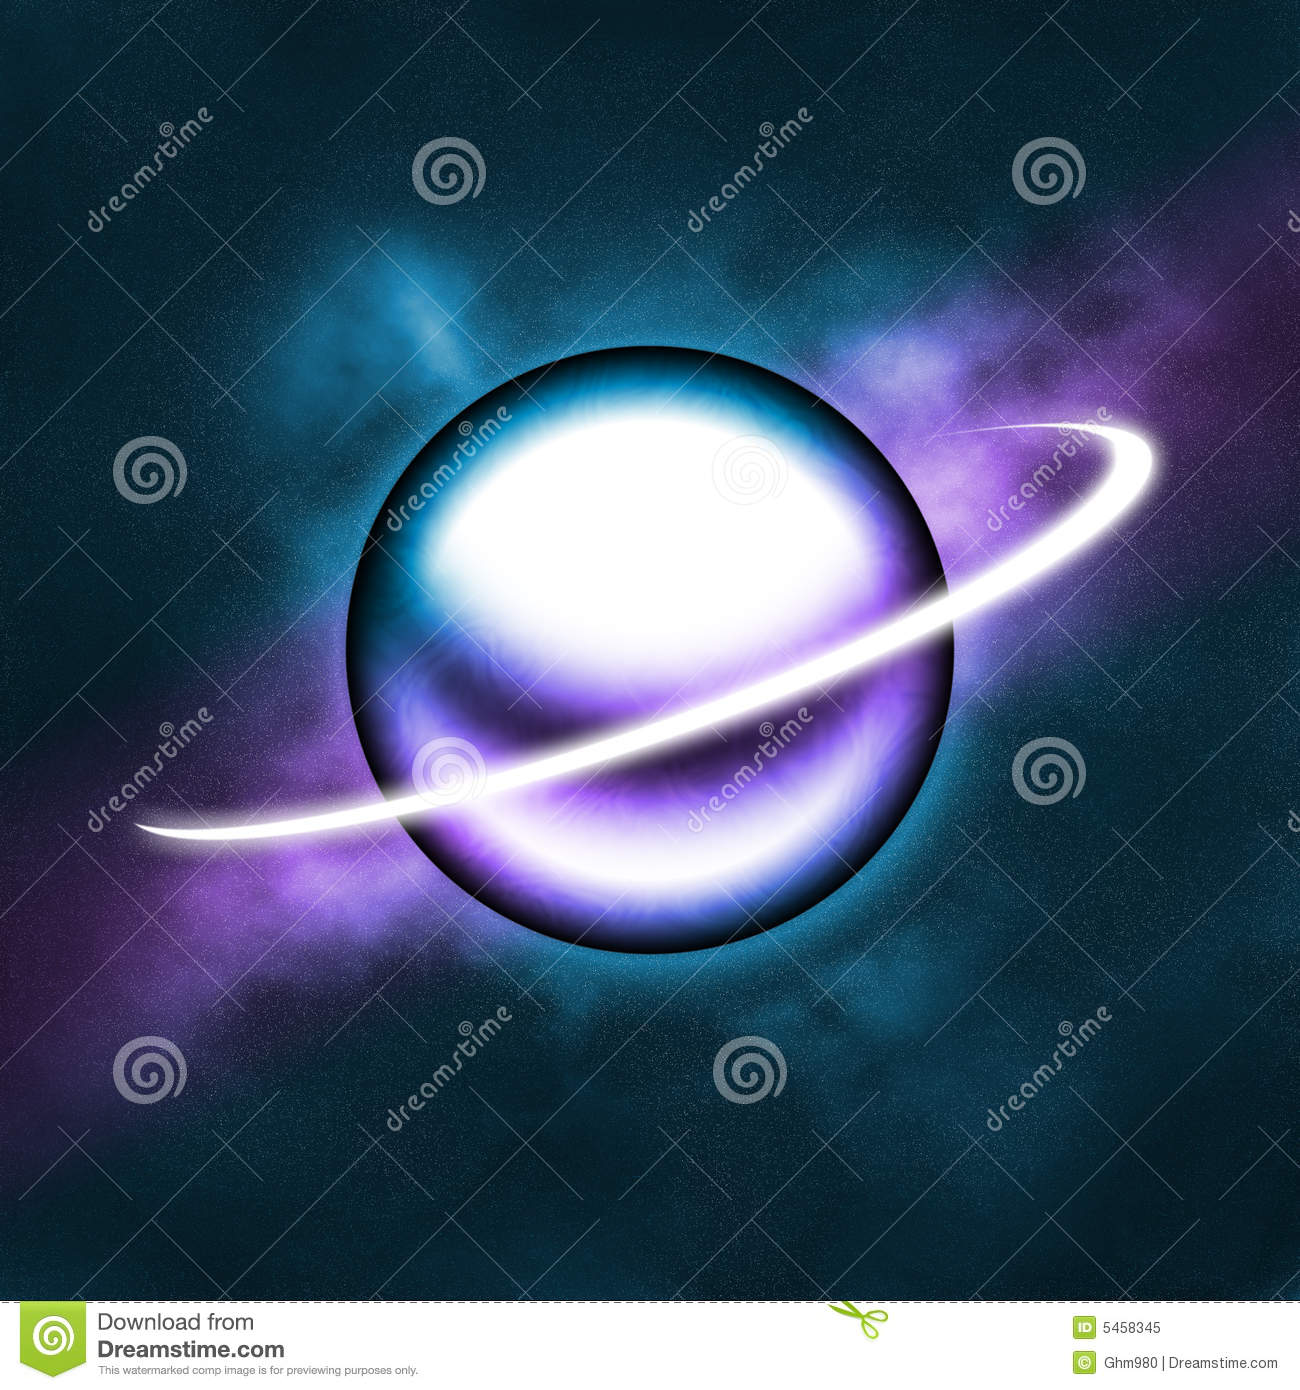 purple and blue planets - photo #8